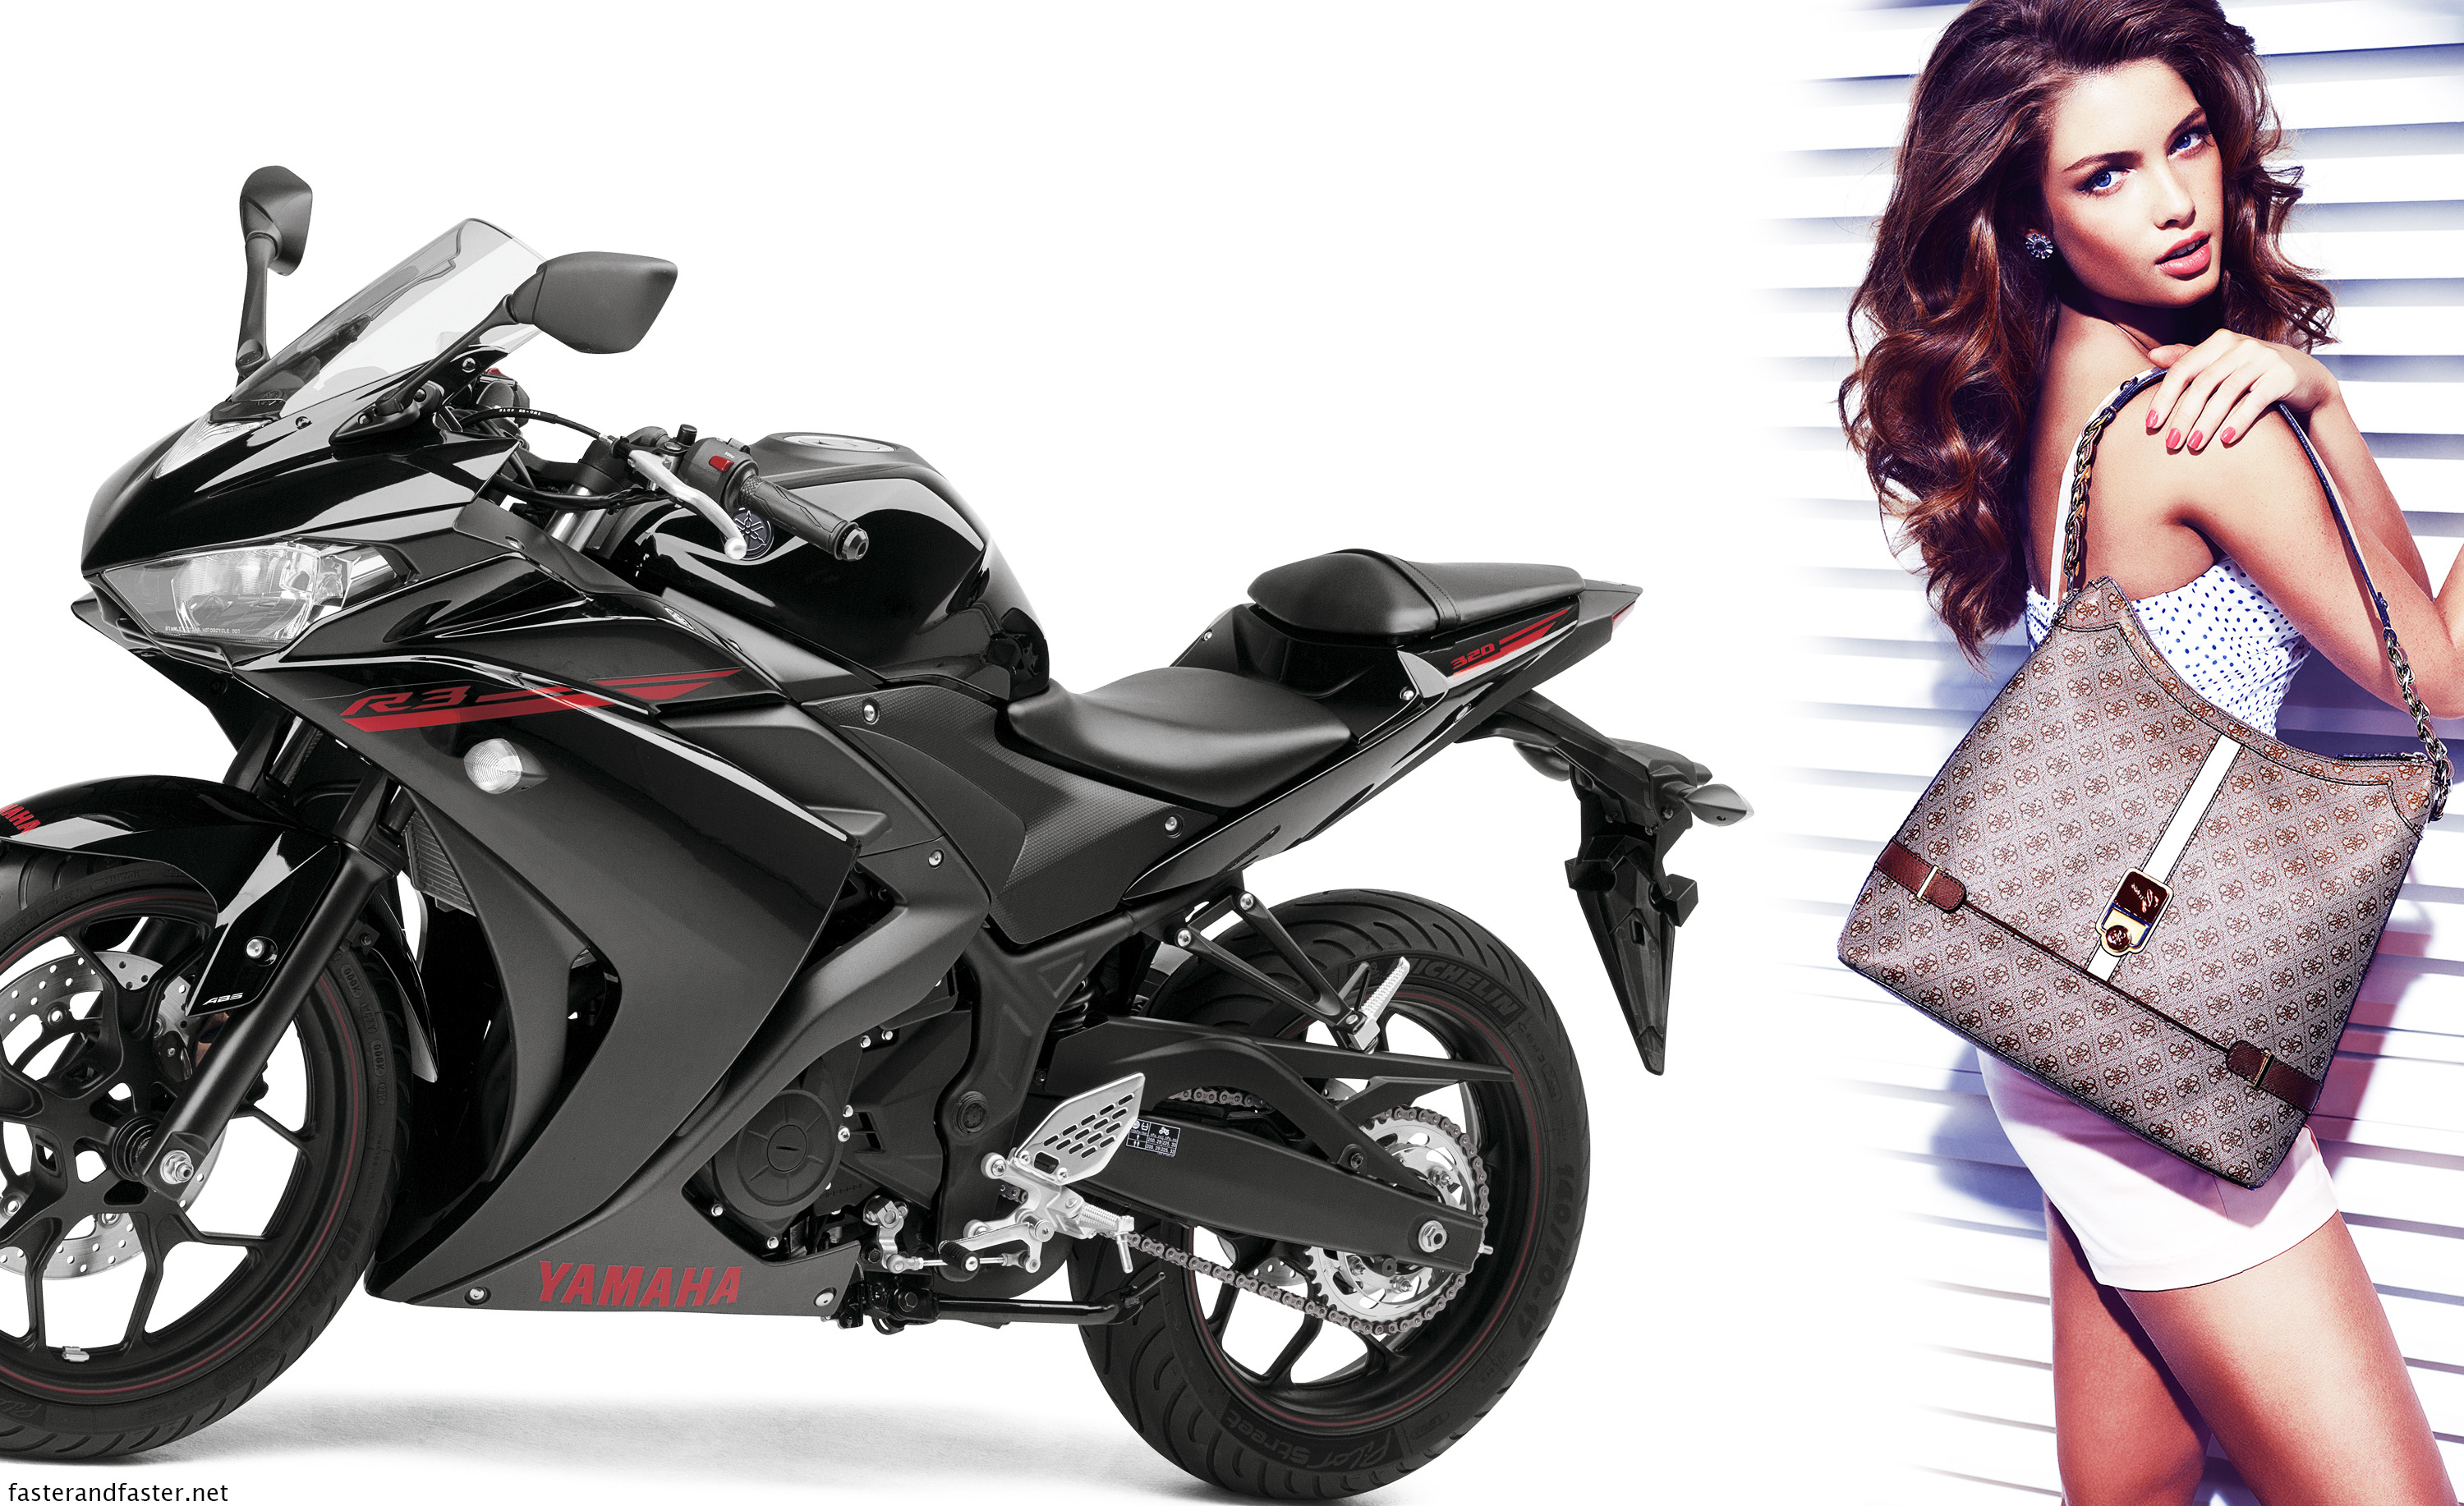 12 icdn.ru girls.com lovefun #3 Expensive Bikes Wallpaper Sexy Women On Bike